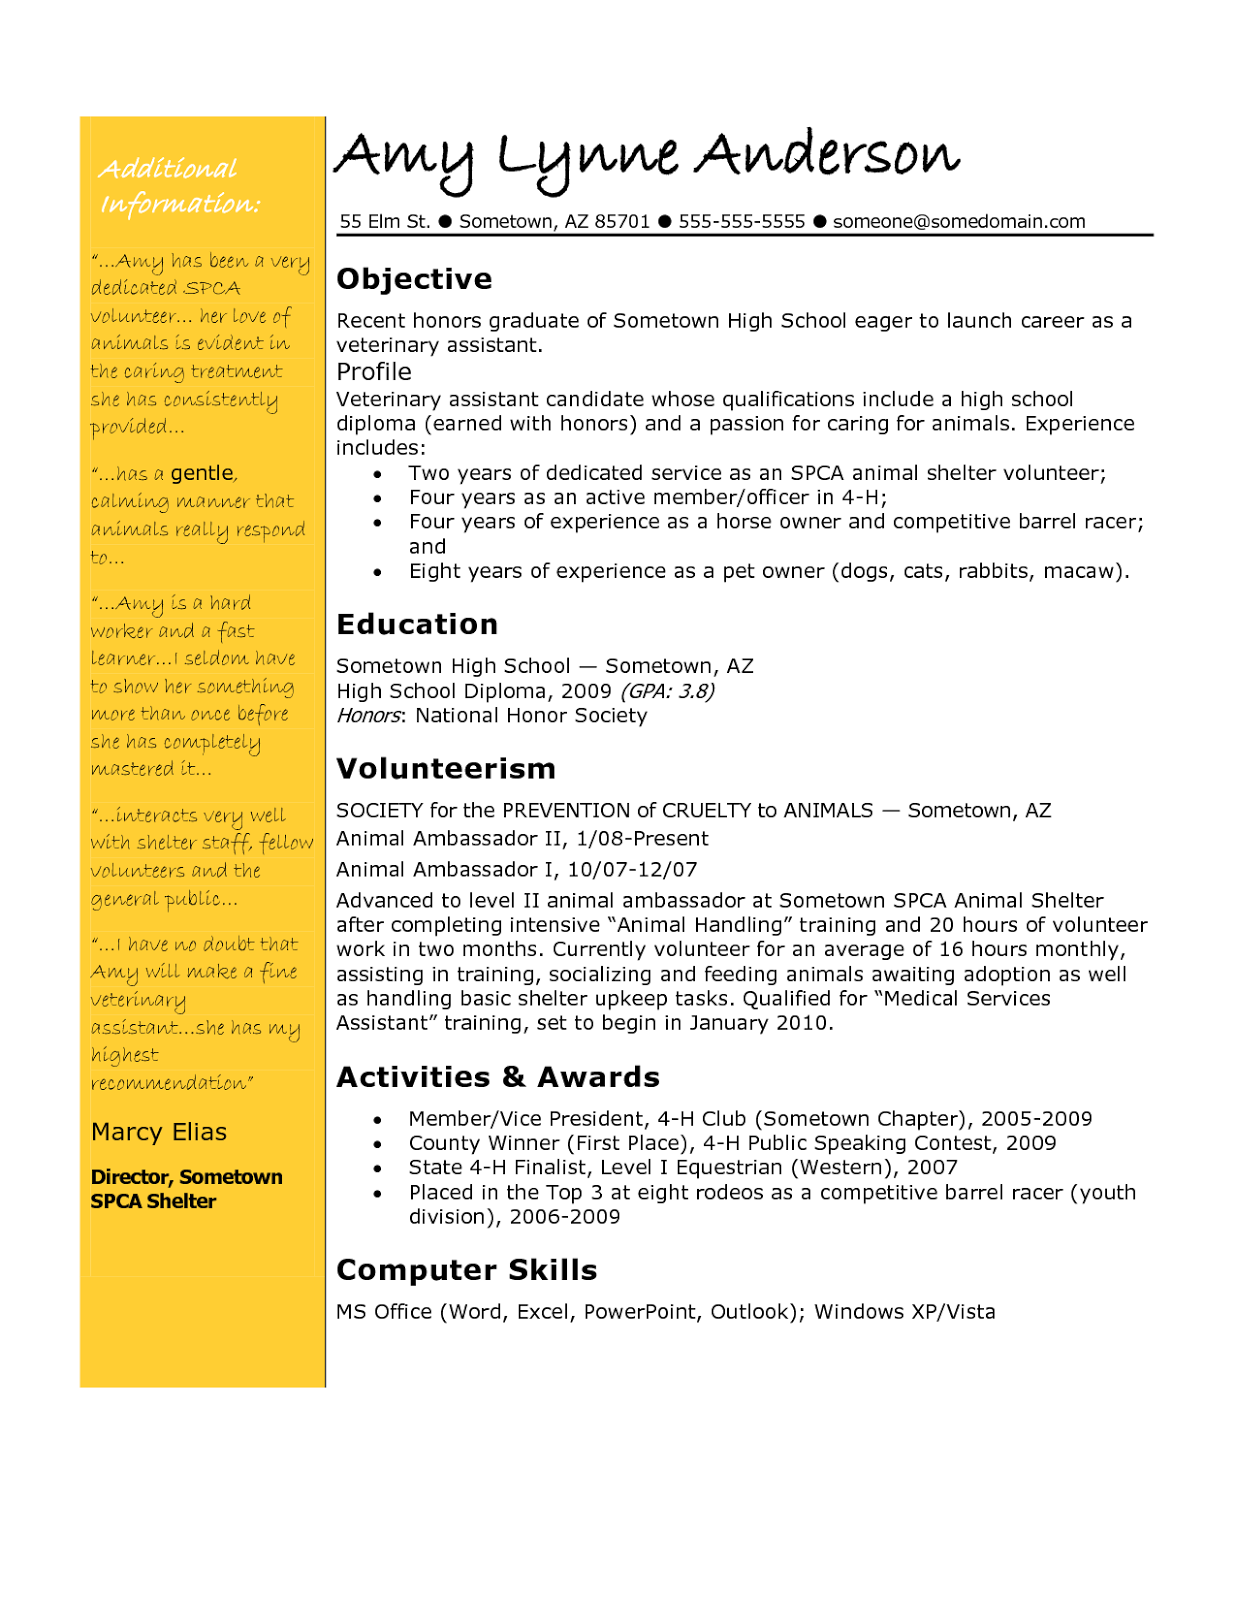 Customer Service Skills List Resume List Of Skill For Resume Sample  Objectives For Resume Writing Objective